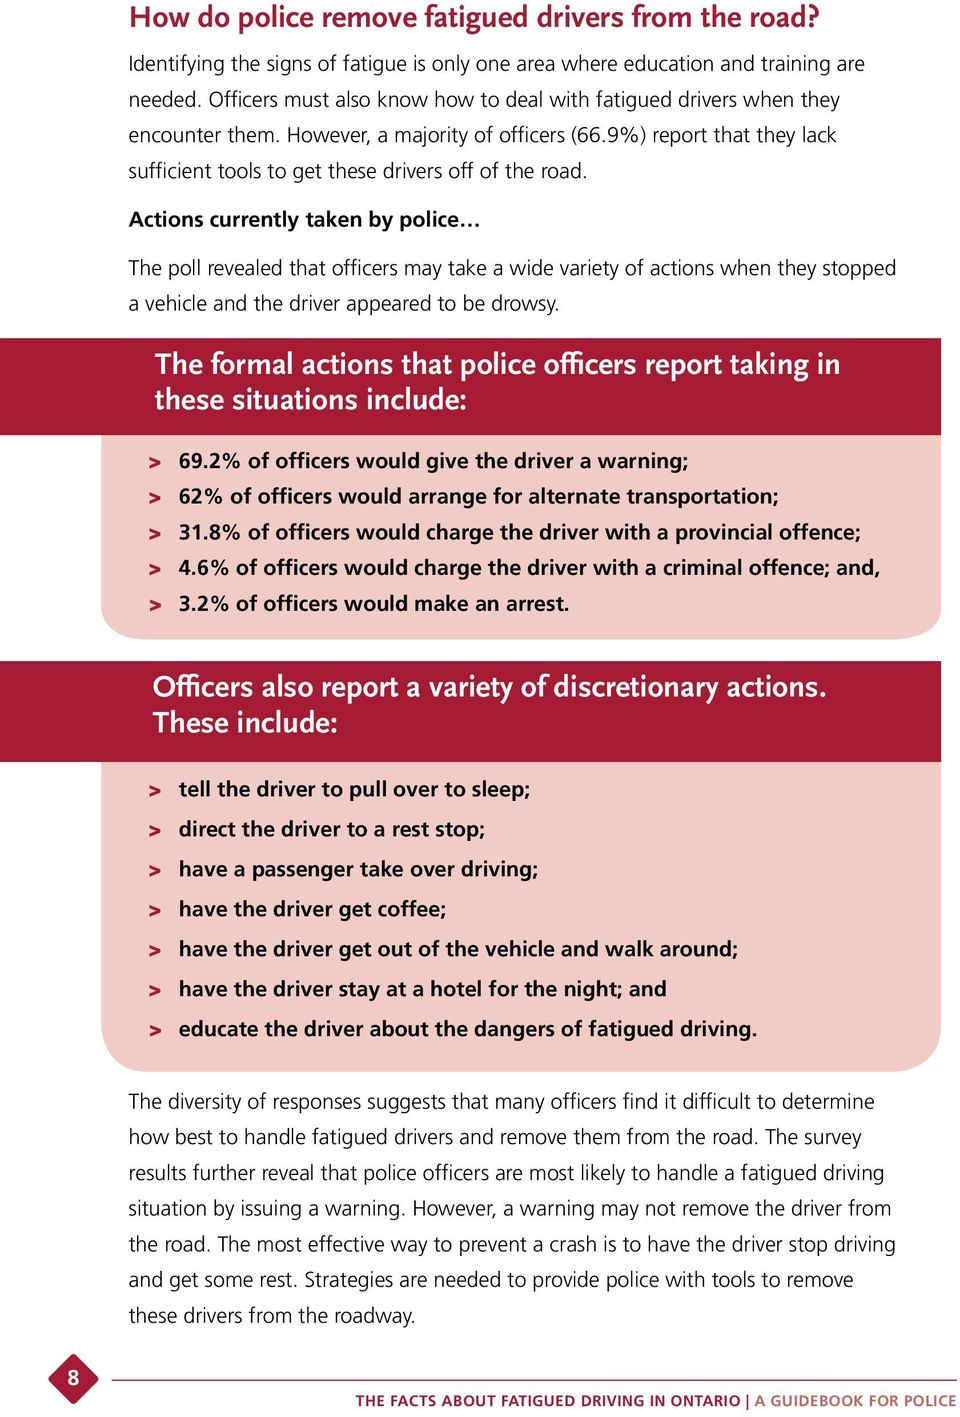 Actions currently taken by police The poll revealed that officers may take a wide variety of actions when they stopped a vehicle and the driver appeared to be drowsy.